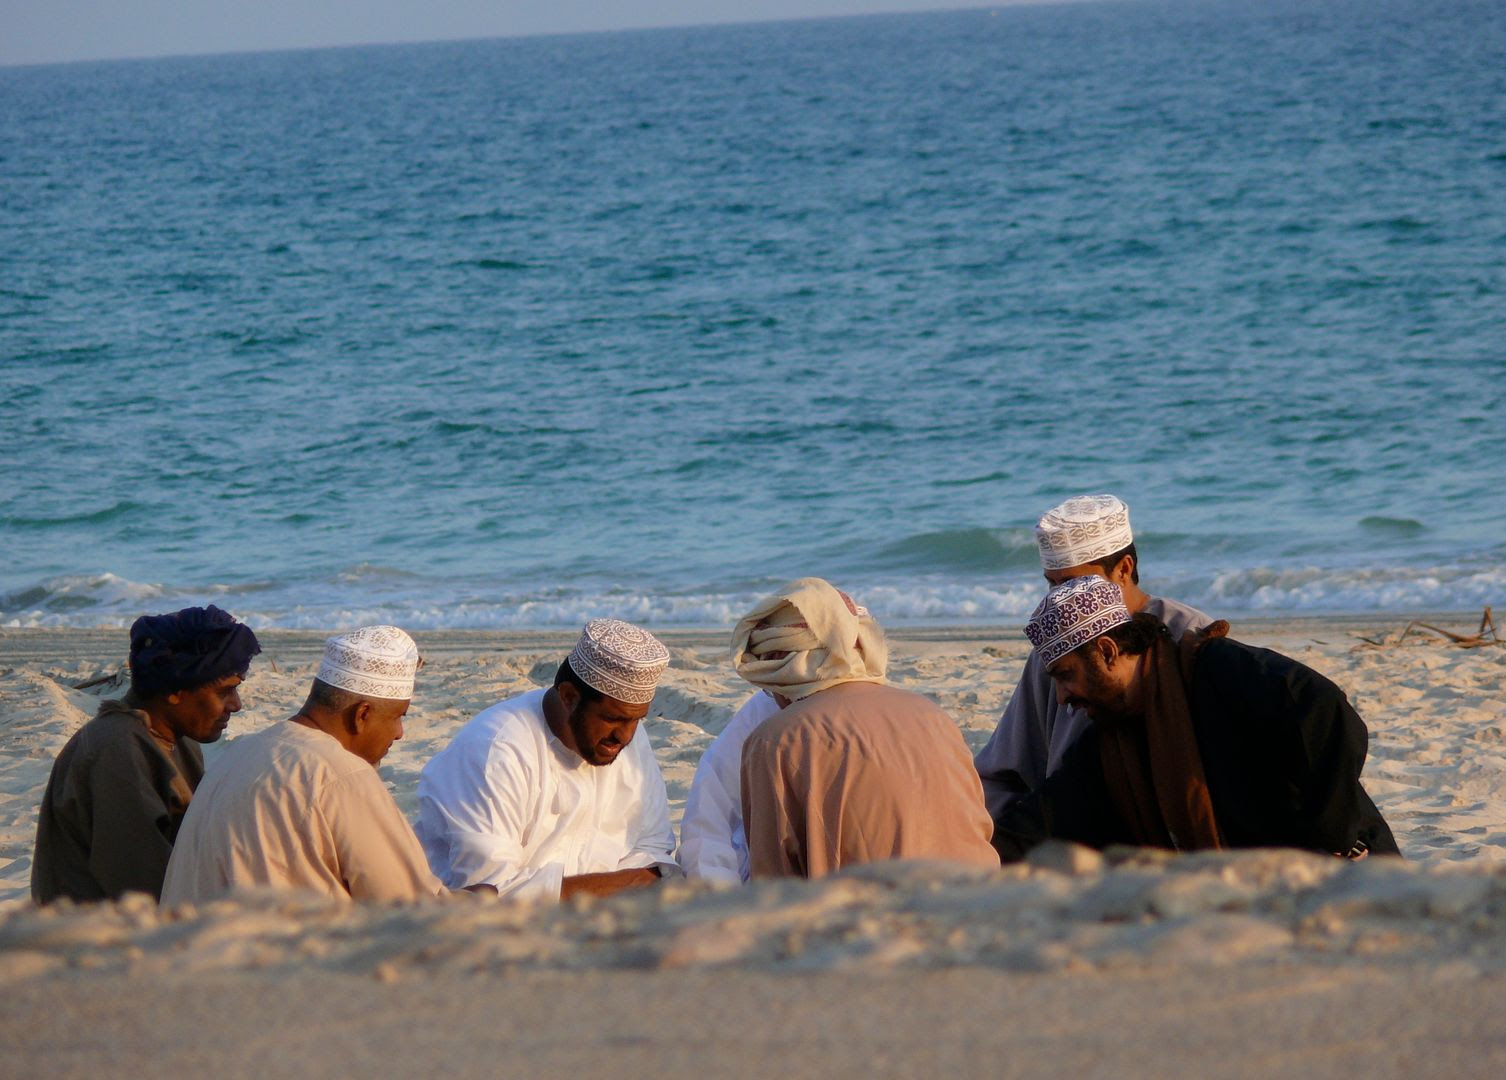 2012.02.23, Playing cards on the beach. (Salalah, Oman)